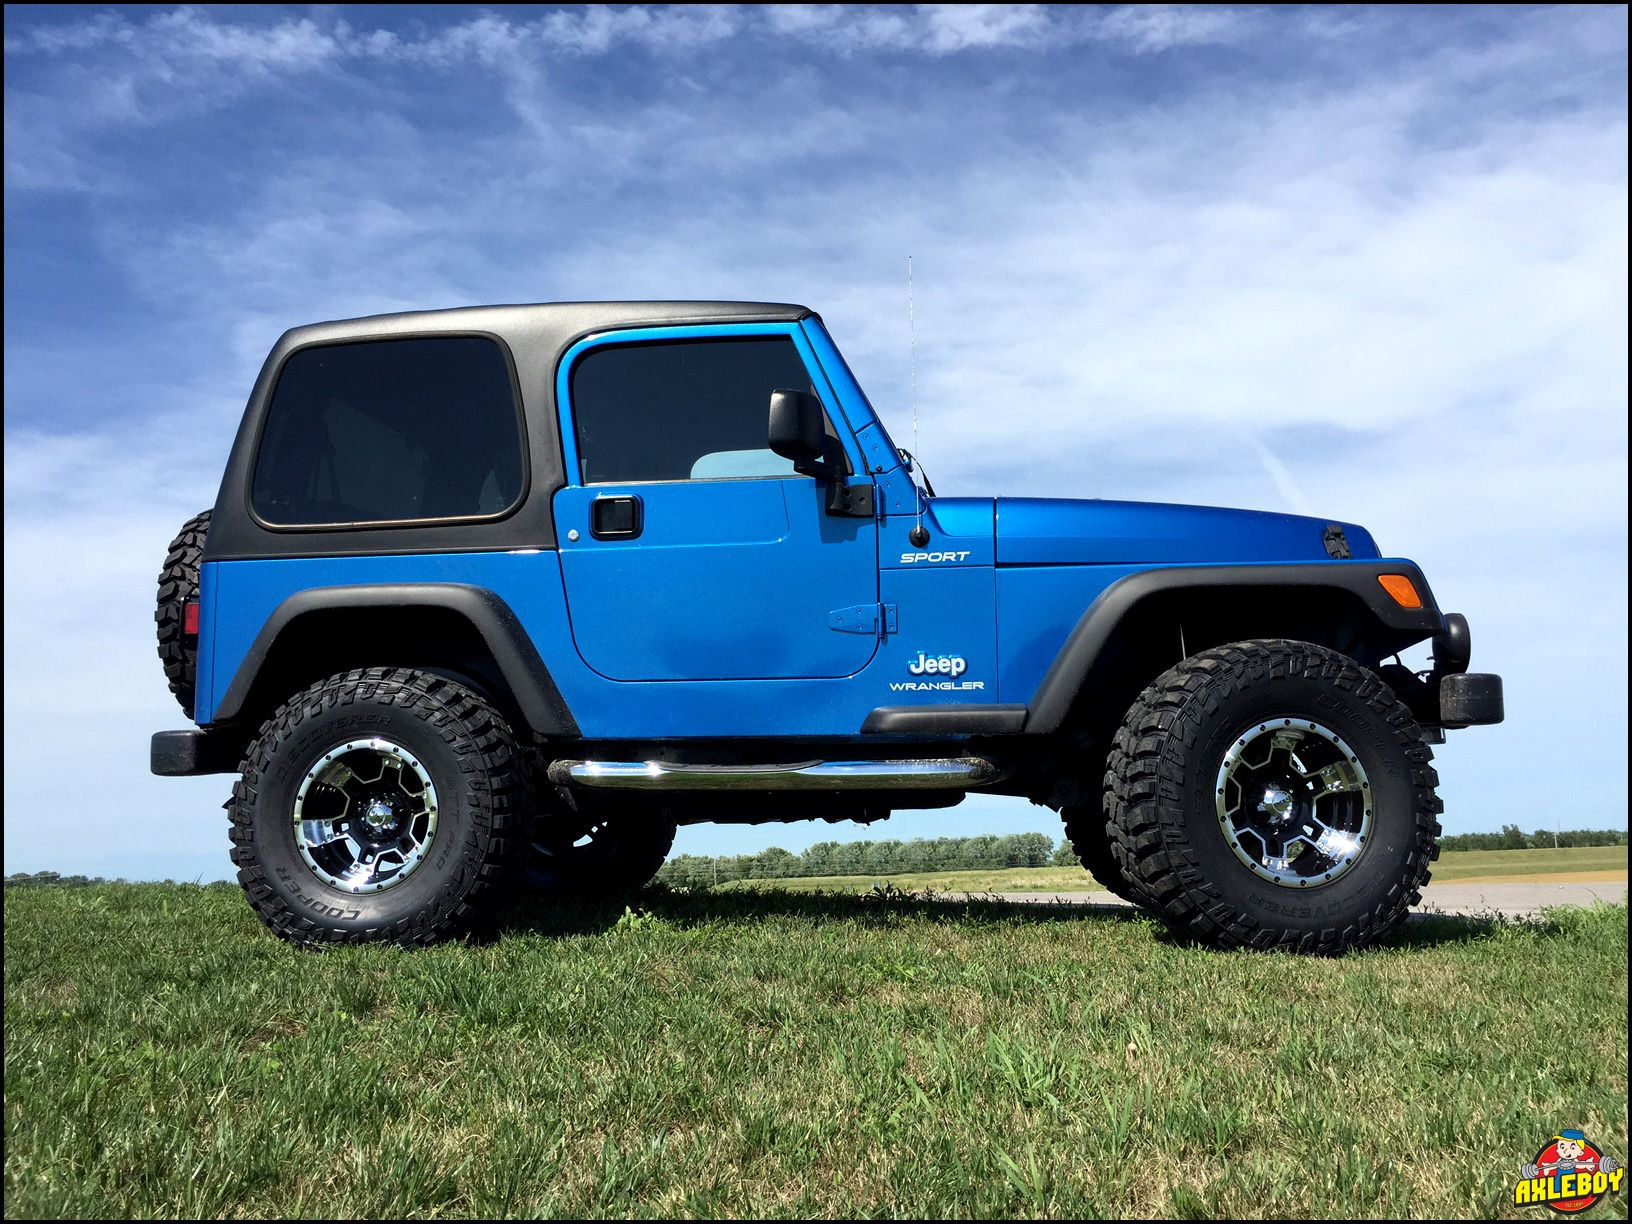 2003 jeep wrangler missouri blue classic cars awesome offroad jeeps